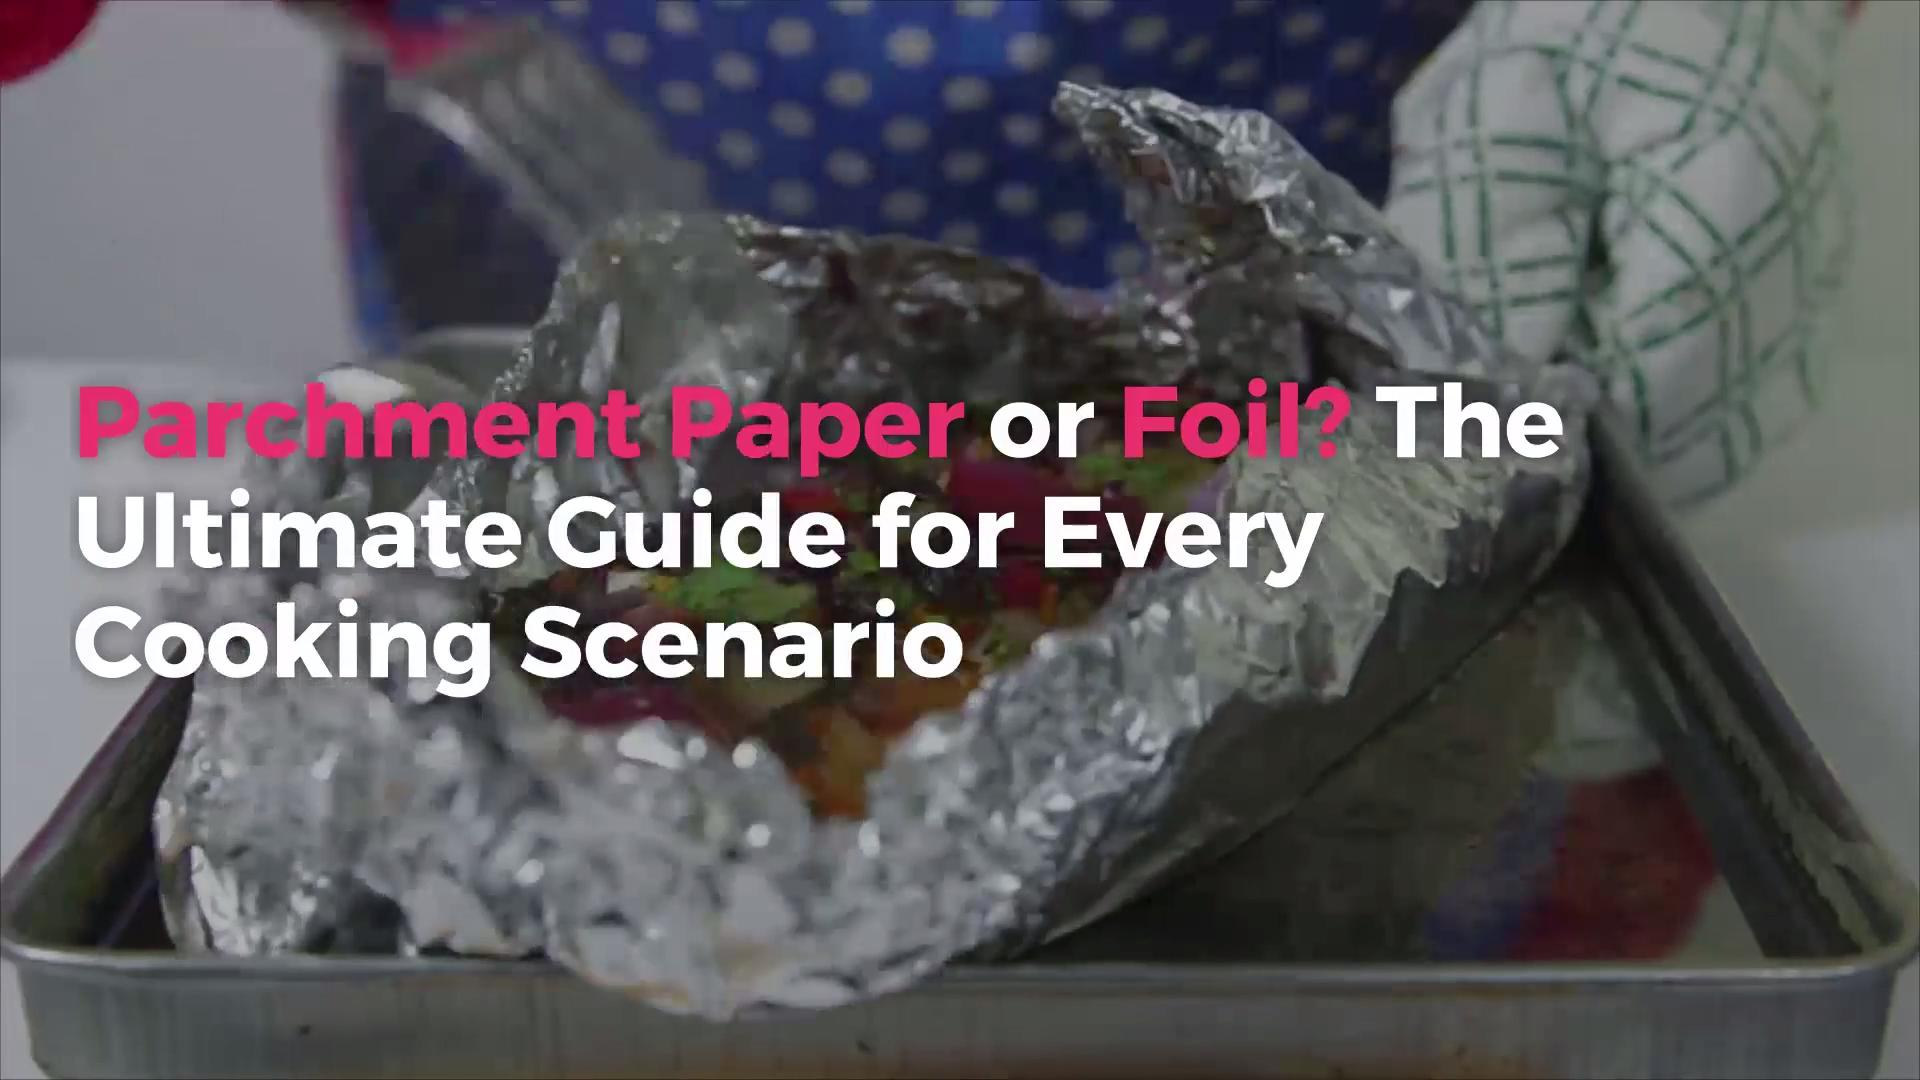 Parchment Paper or Foil? The Ultimate Guide for Every Cooking Scenario